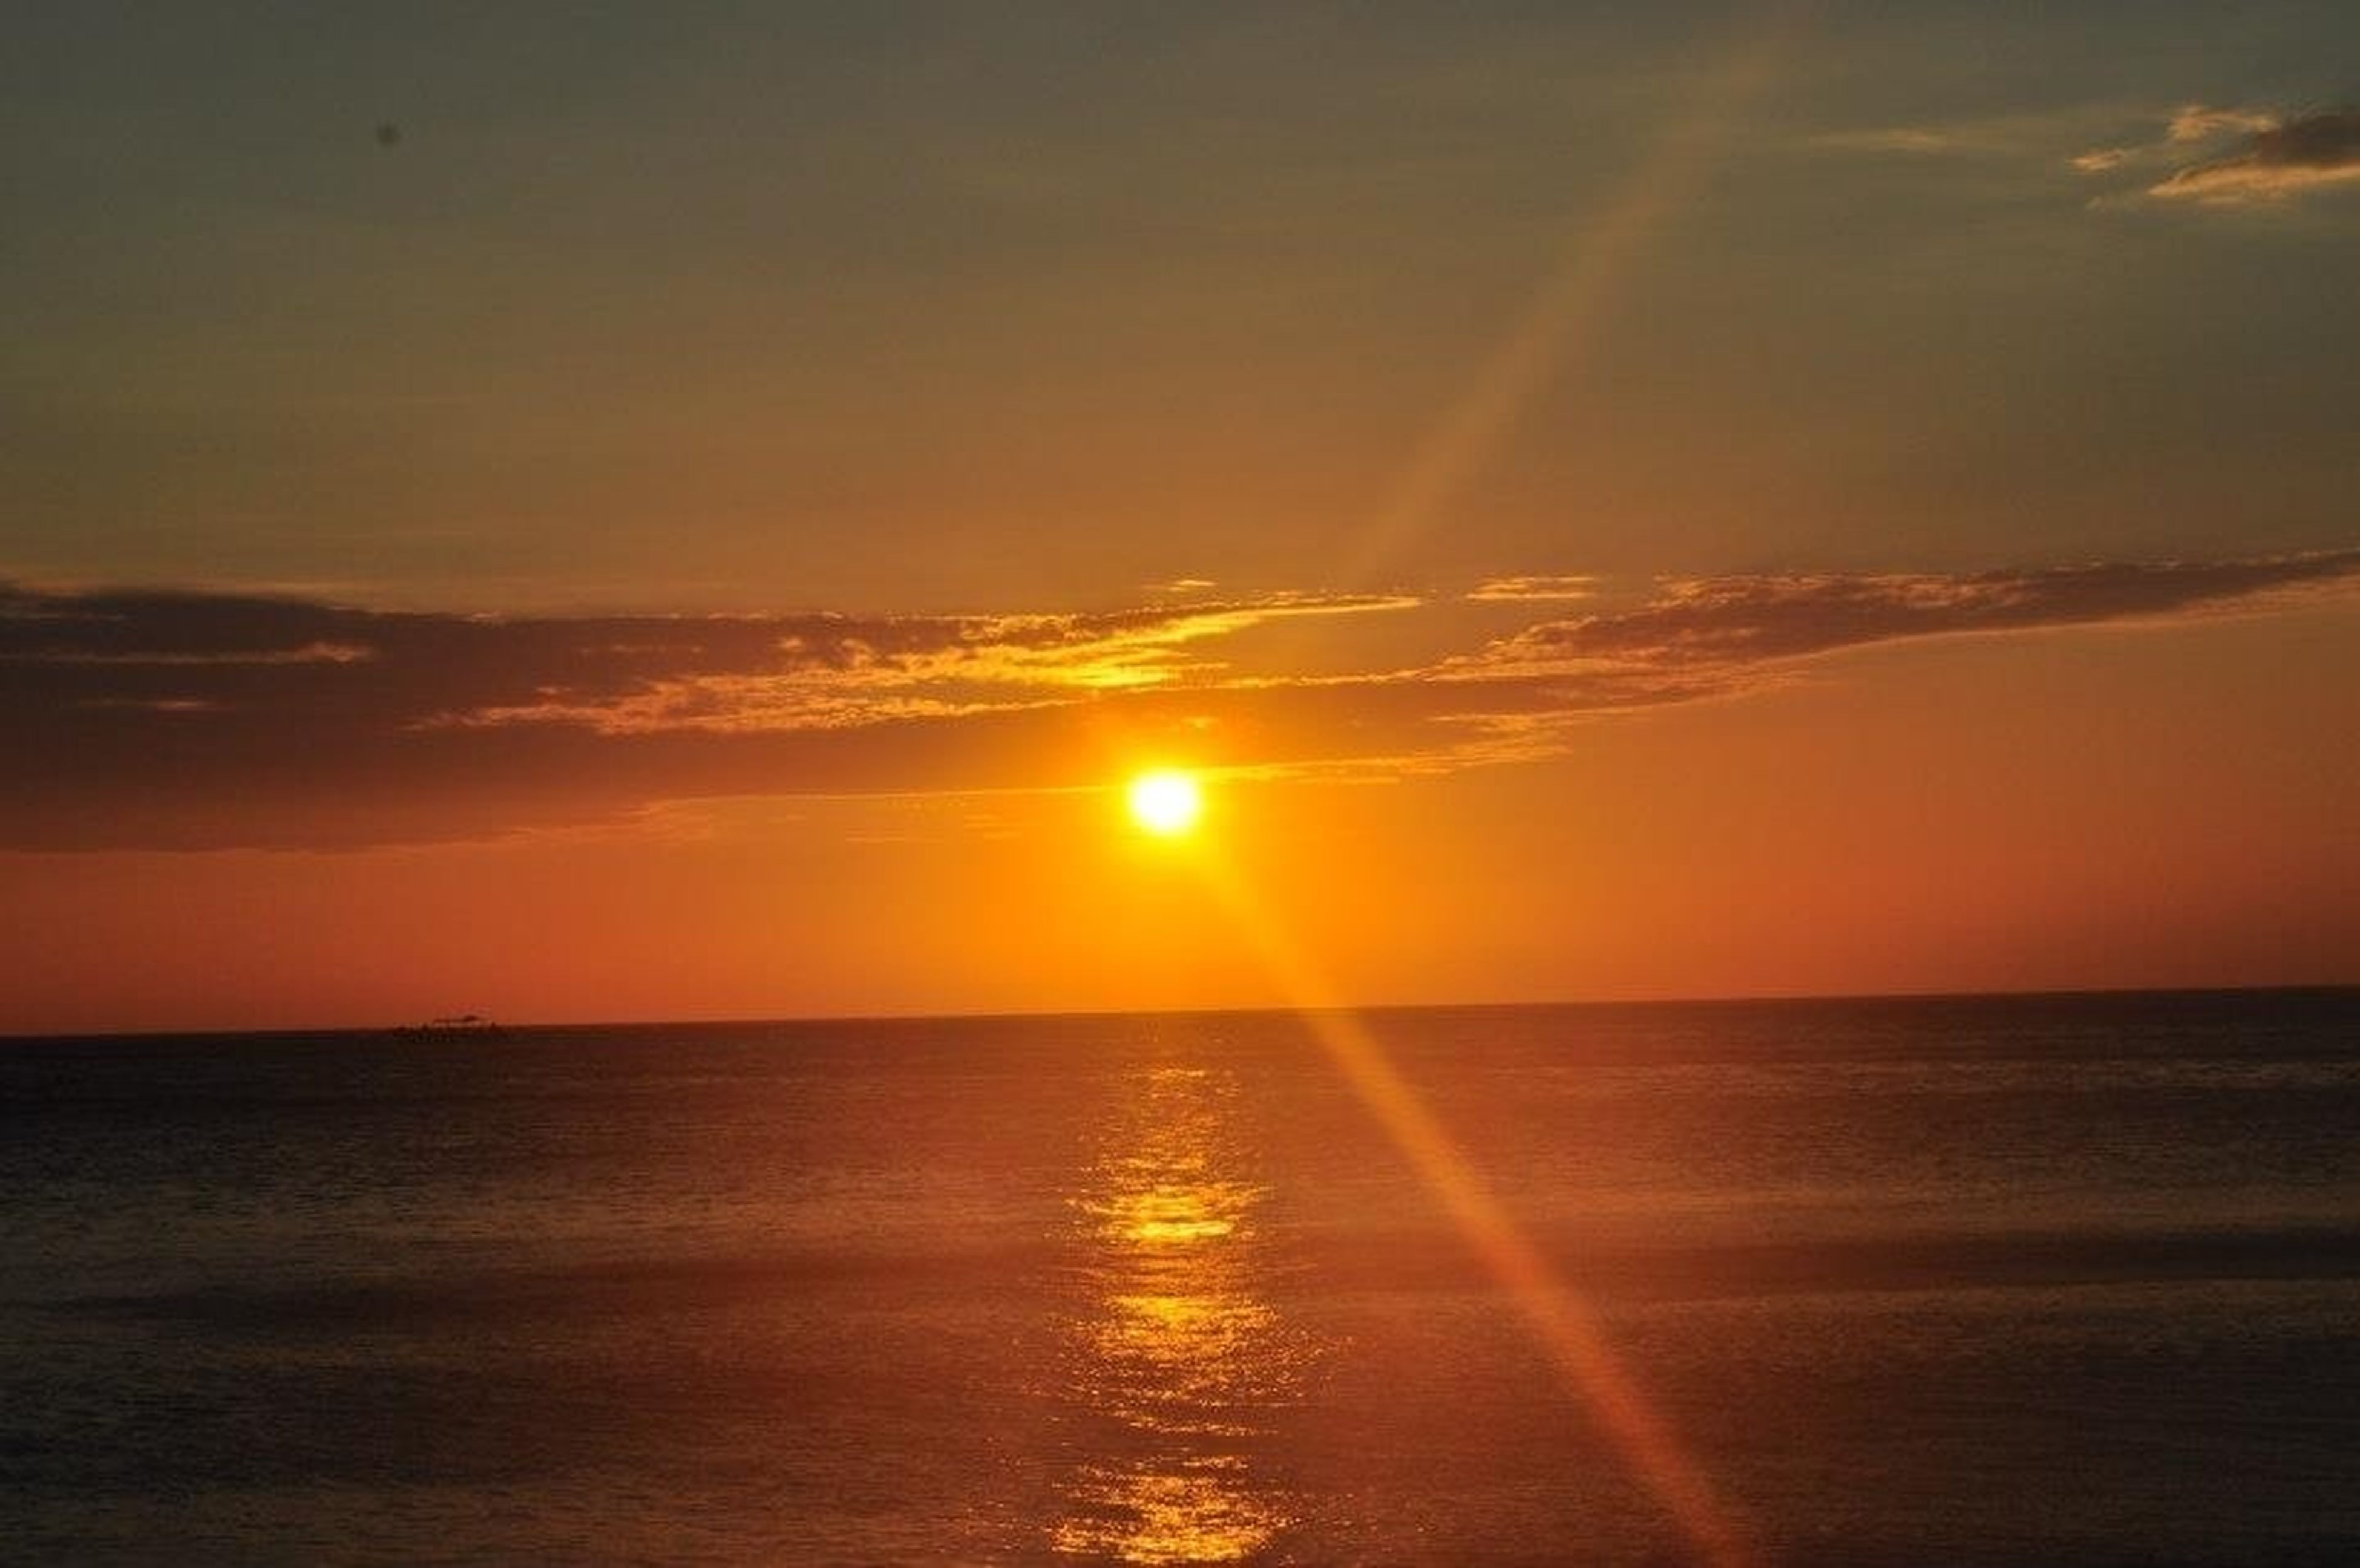 sunset, sun, sea, scenics, horizon over water, water, tranquil scene, beauty in nature, orange color, tranquility, sky, idyllic, reflection, nature, sunlight, waterfront, sunbeam, cloud - sky, cloud, outdoors